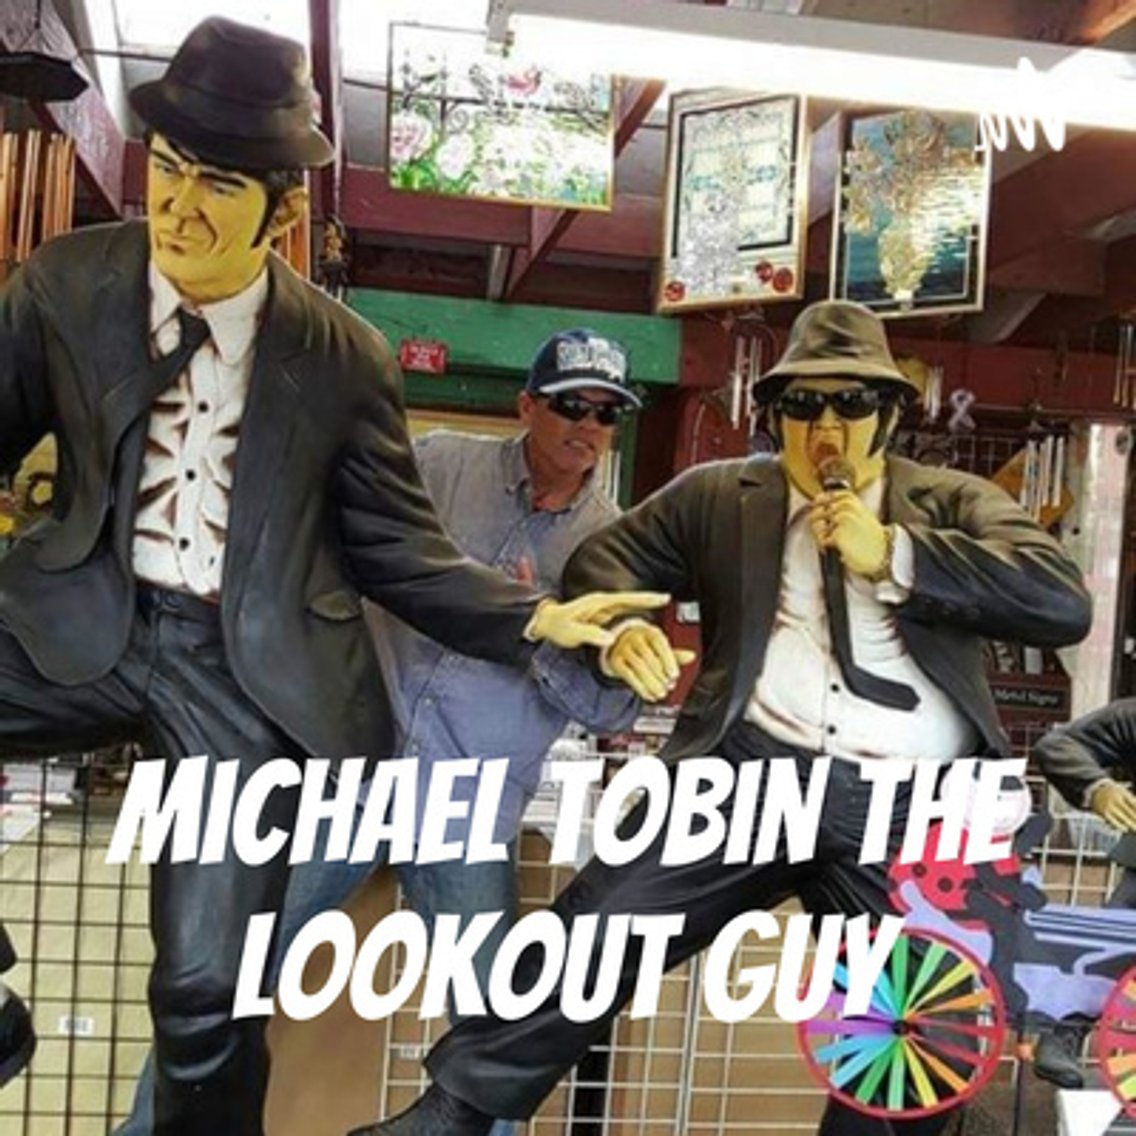 Michael D T The Lookout Guy - Cover Image